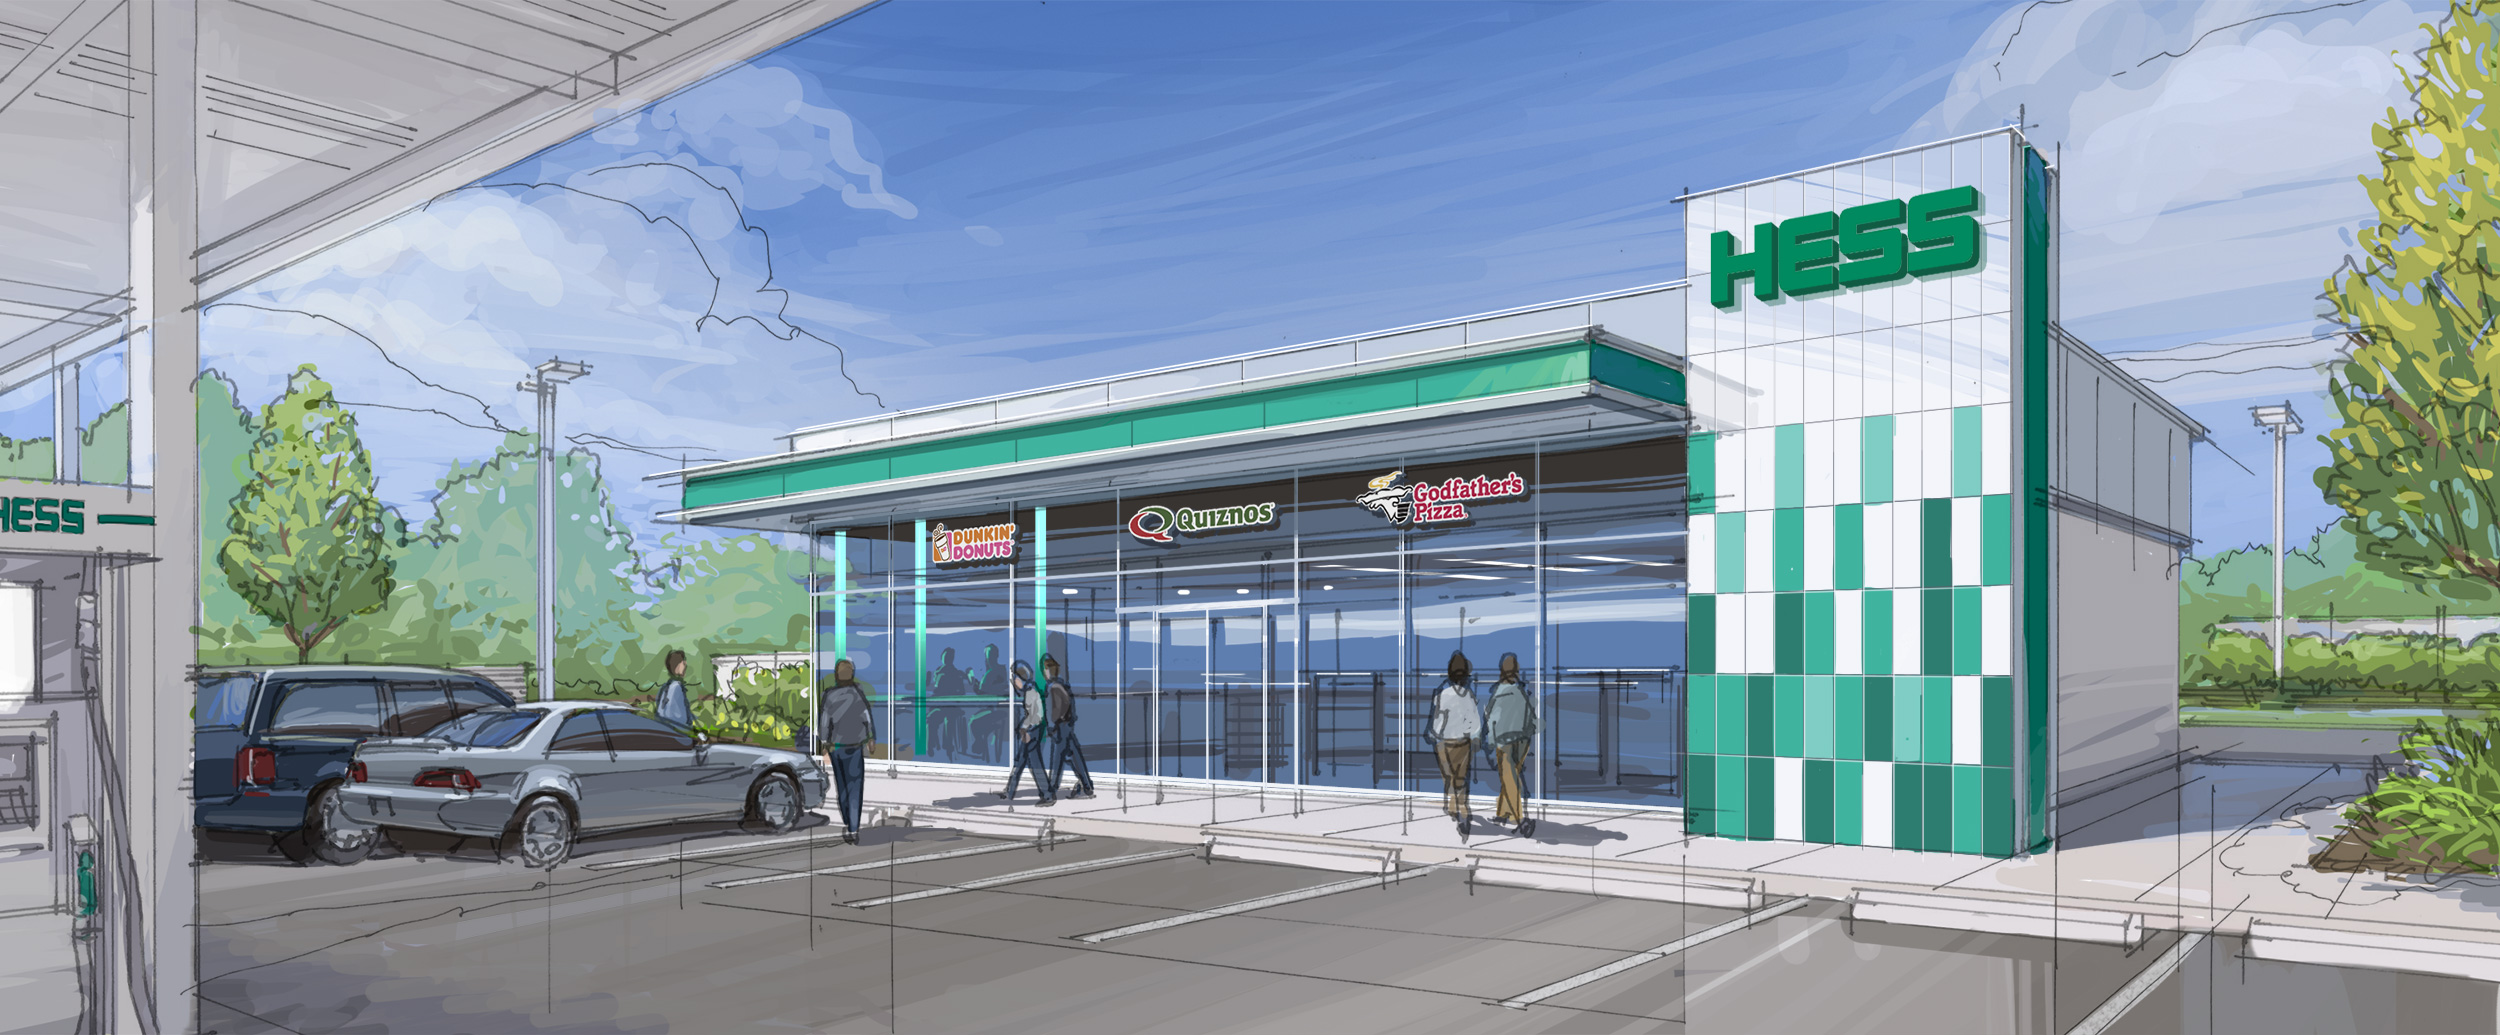 Dave pinter hess prototype convenience store architecture for Convenience store exterior design